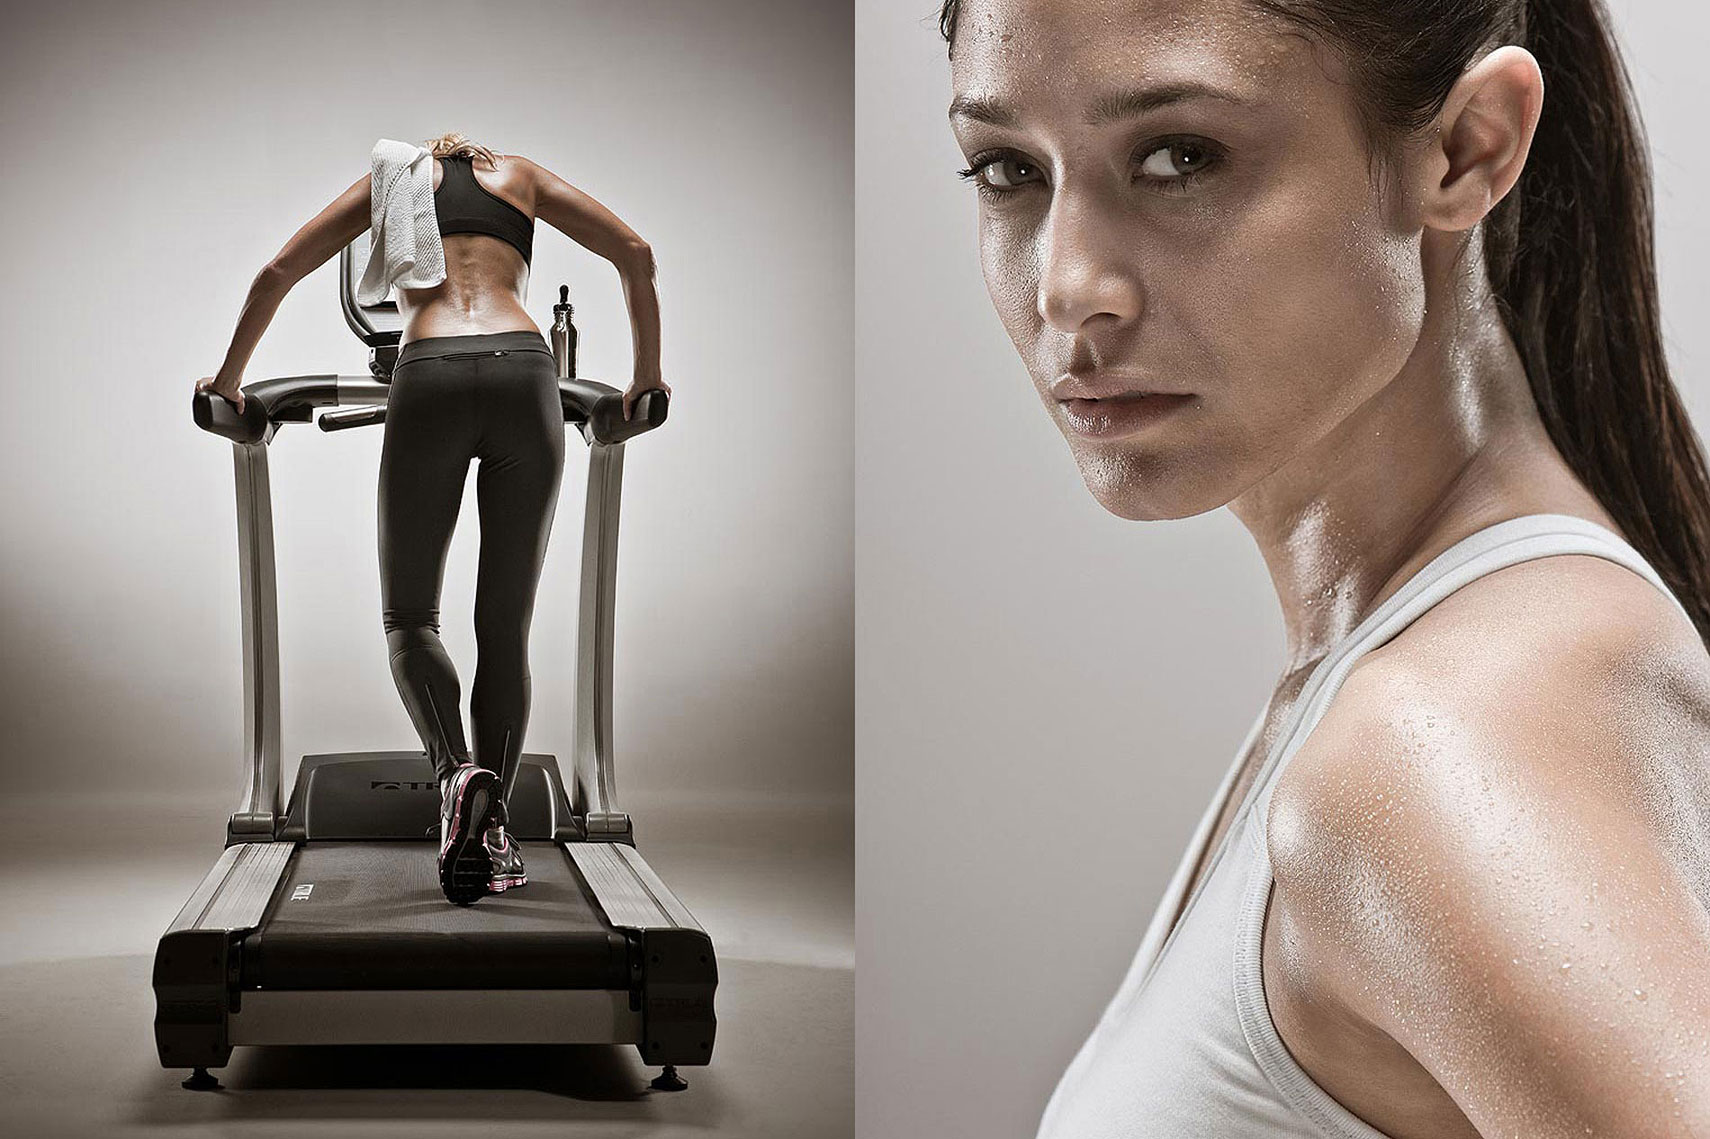 split screen of a woman working out on a treadmill and a close up of a woman